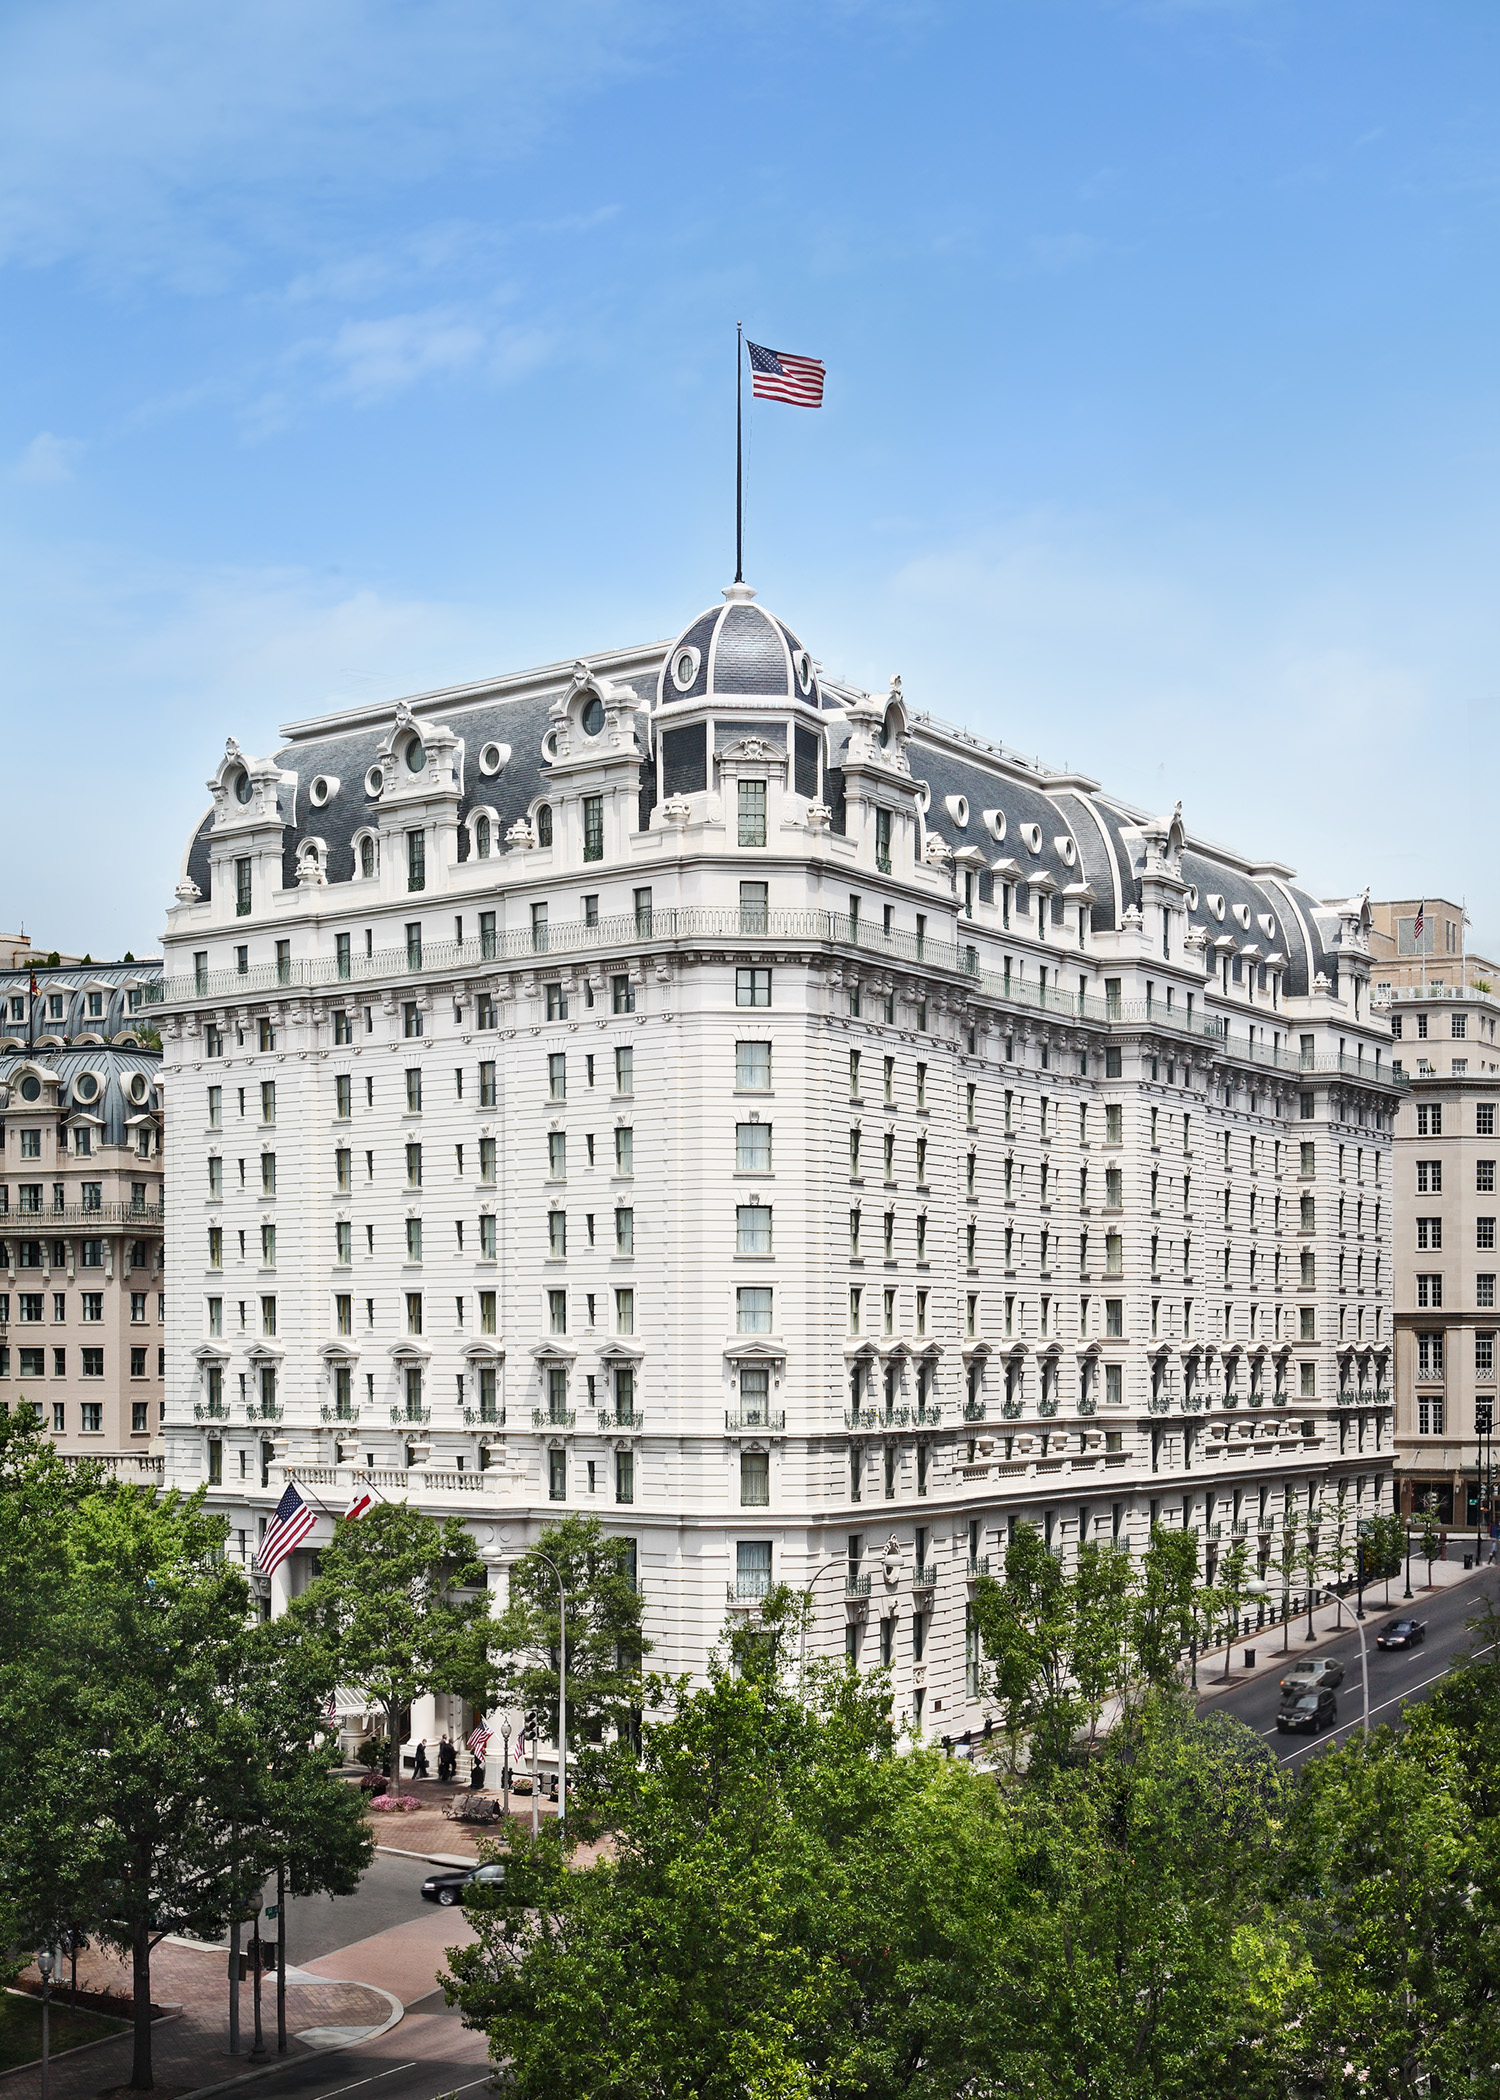 The Willard InterContinental is a historic hotel located one block away from the White House in Washington DC. It has a long and storied history of hosting presidents, celebrities, heads of state and more.